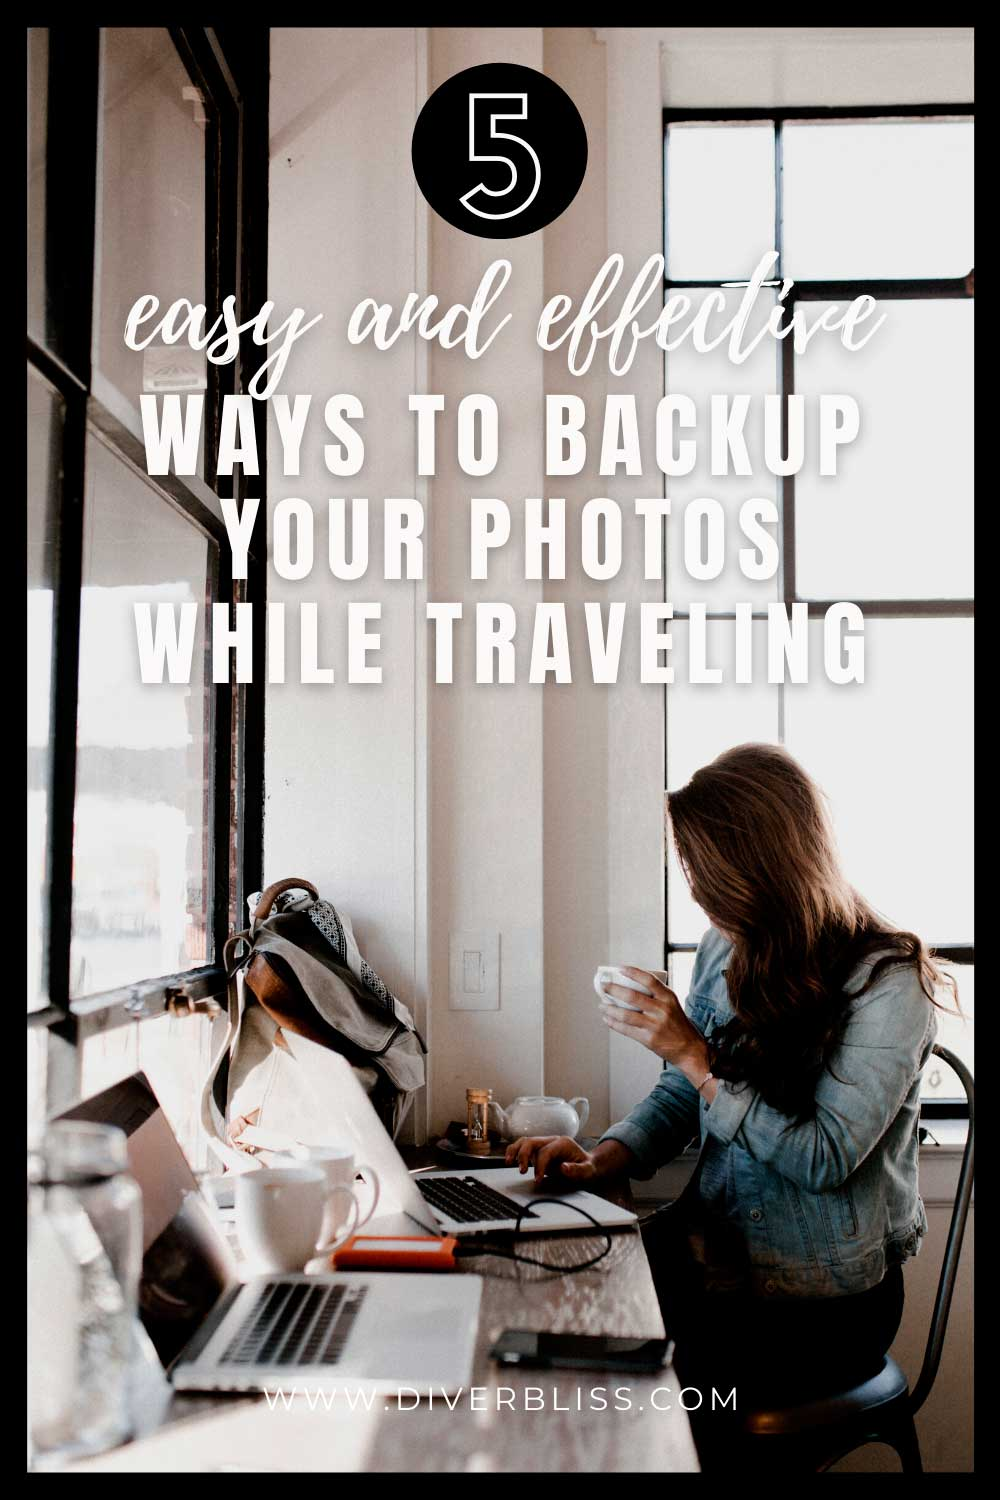 5 easy and effective ways to backup your photos while traveling